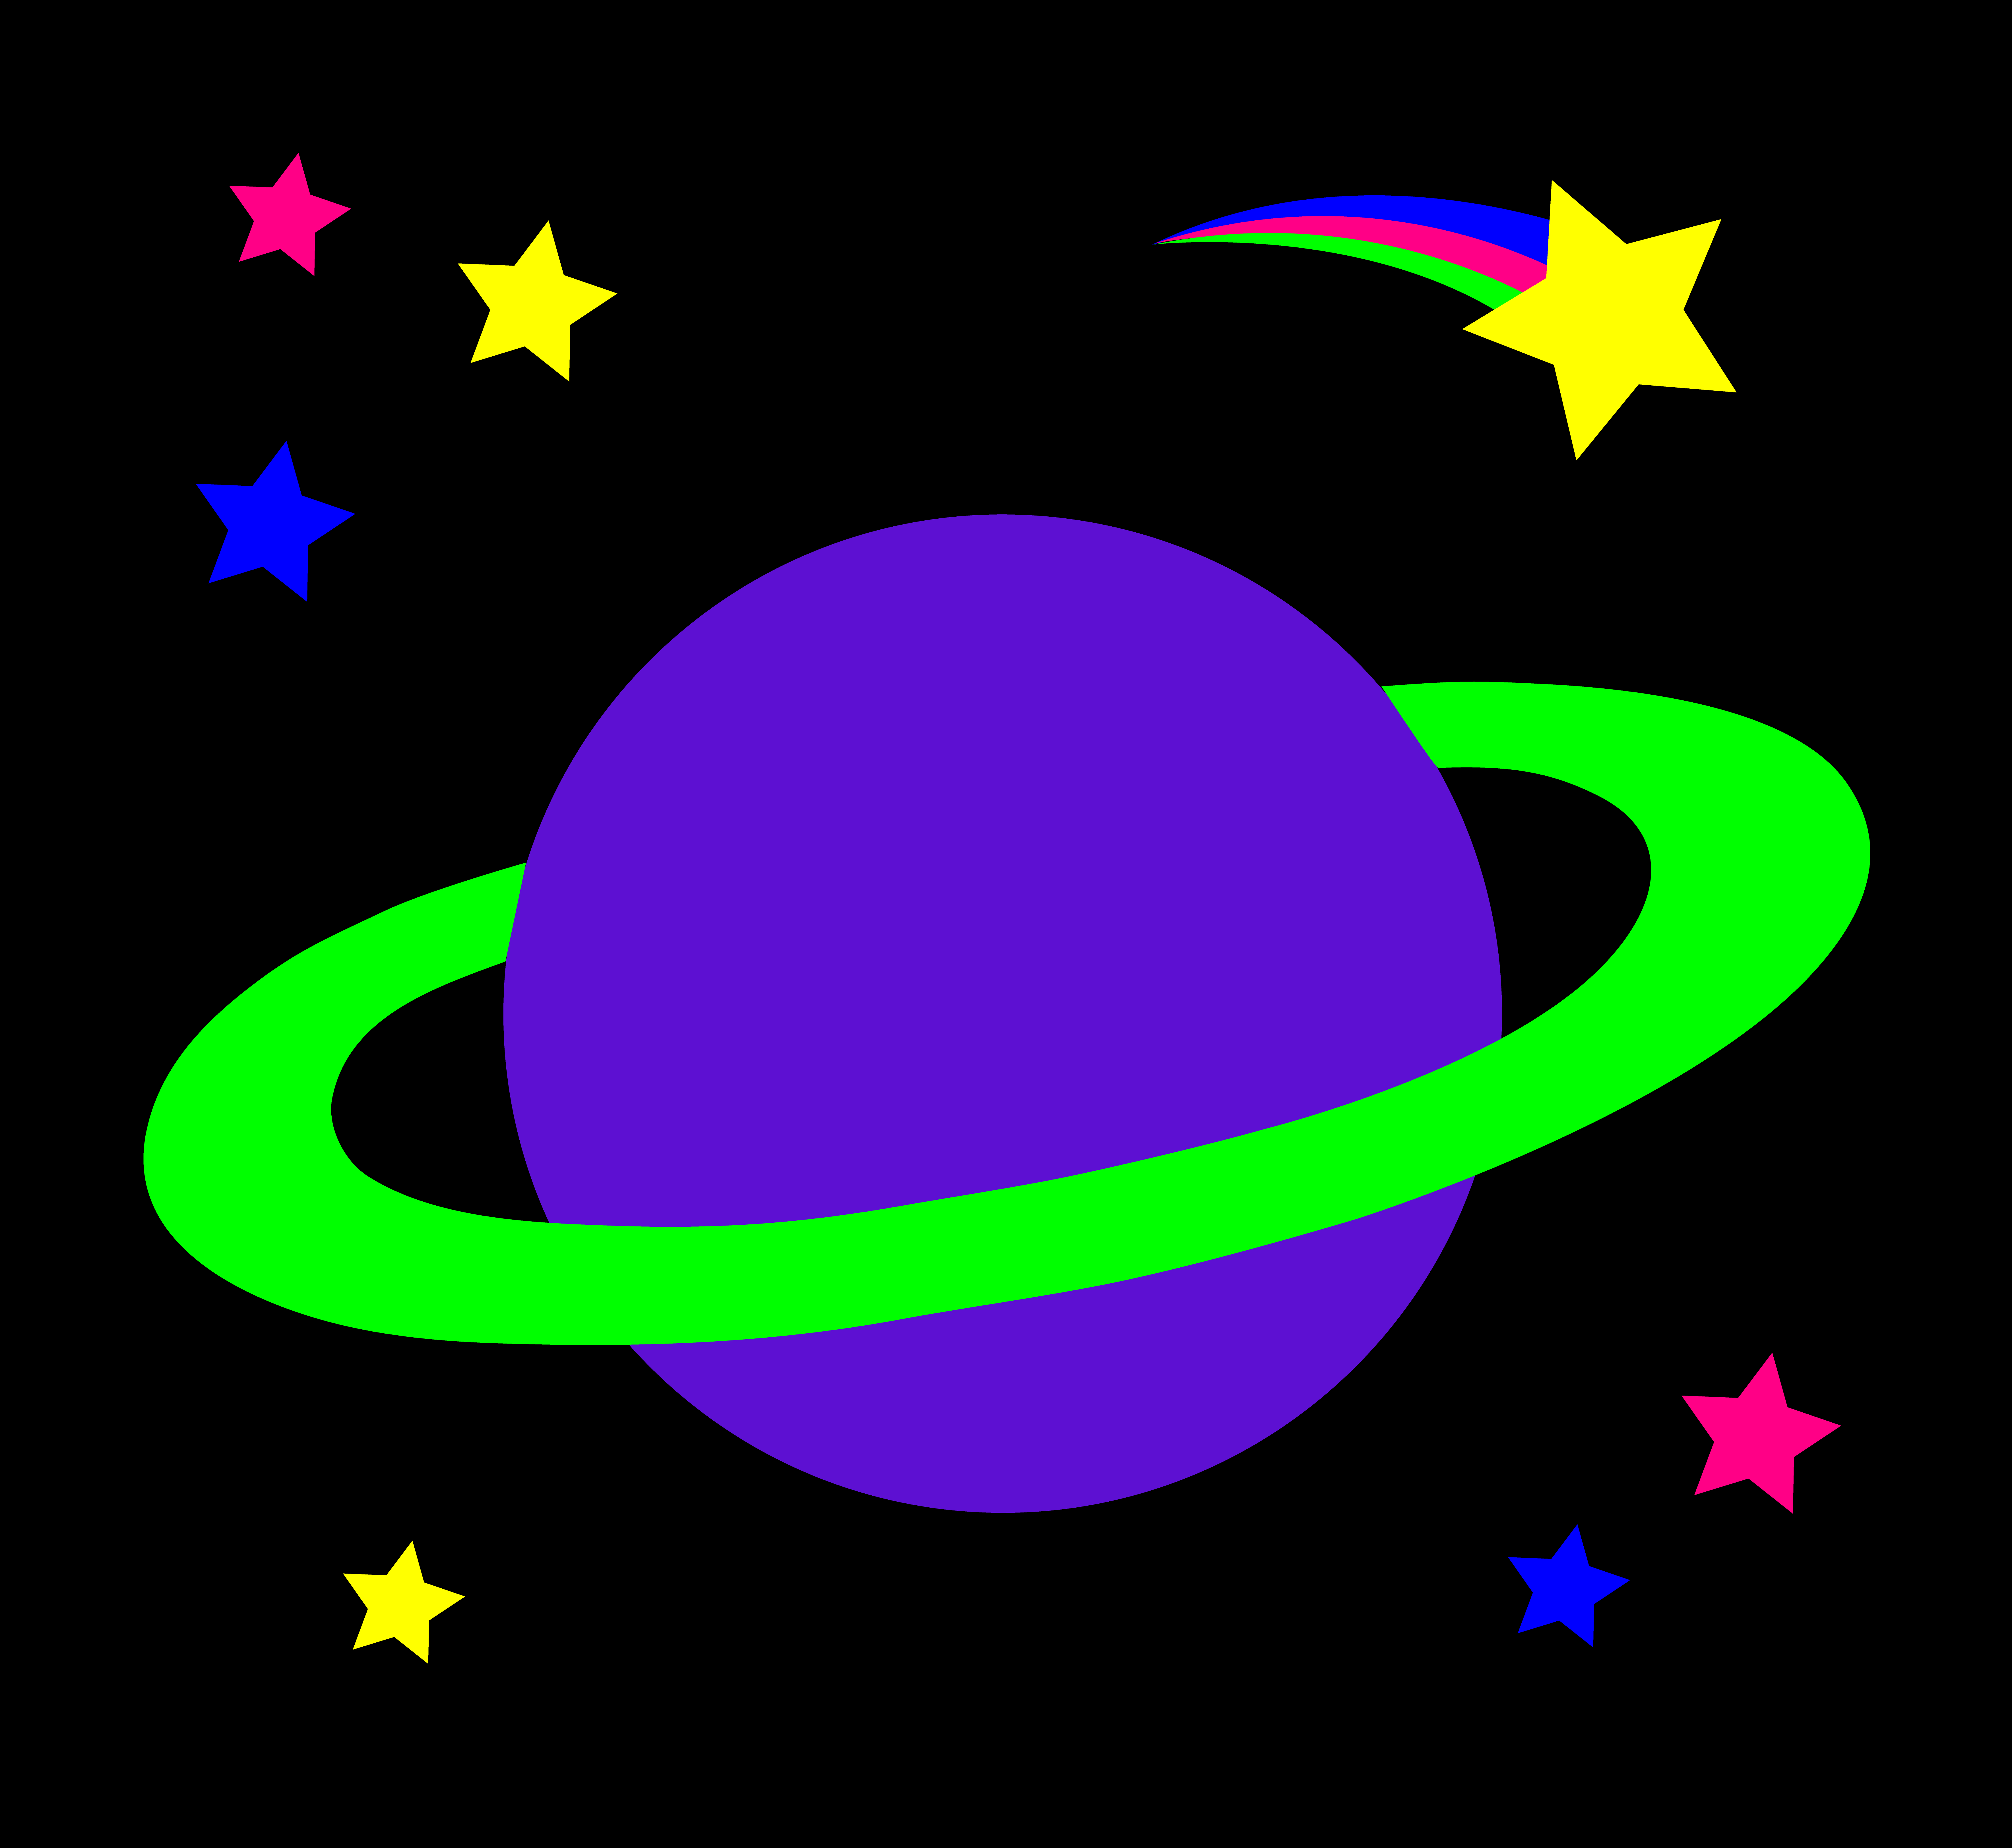 Planets cliparts free download. Clipart stars planet